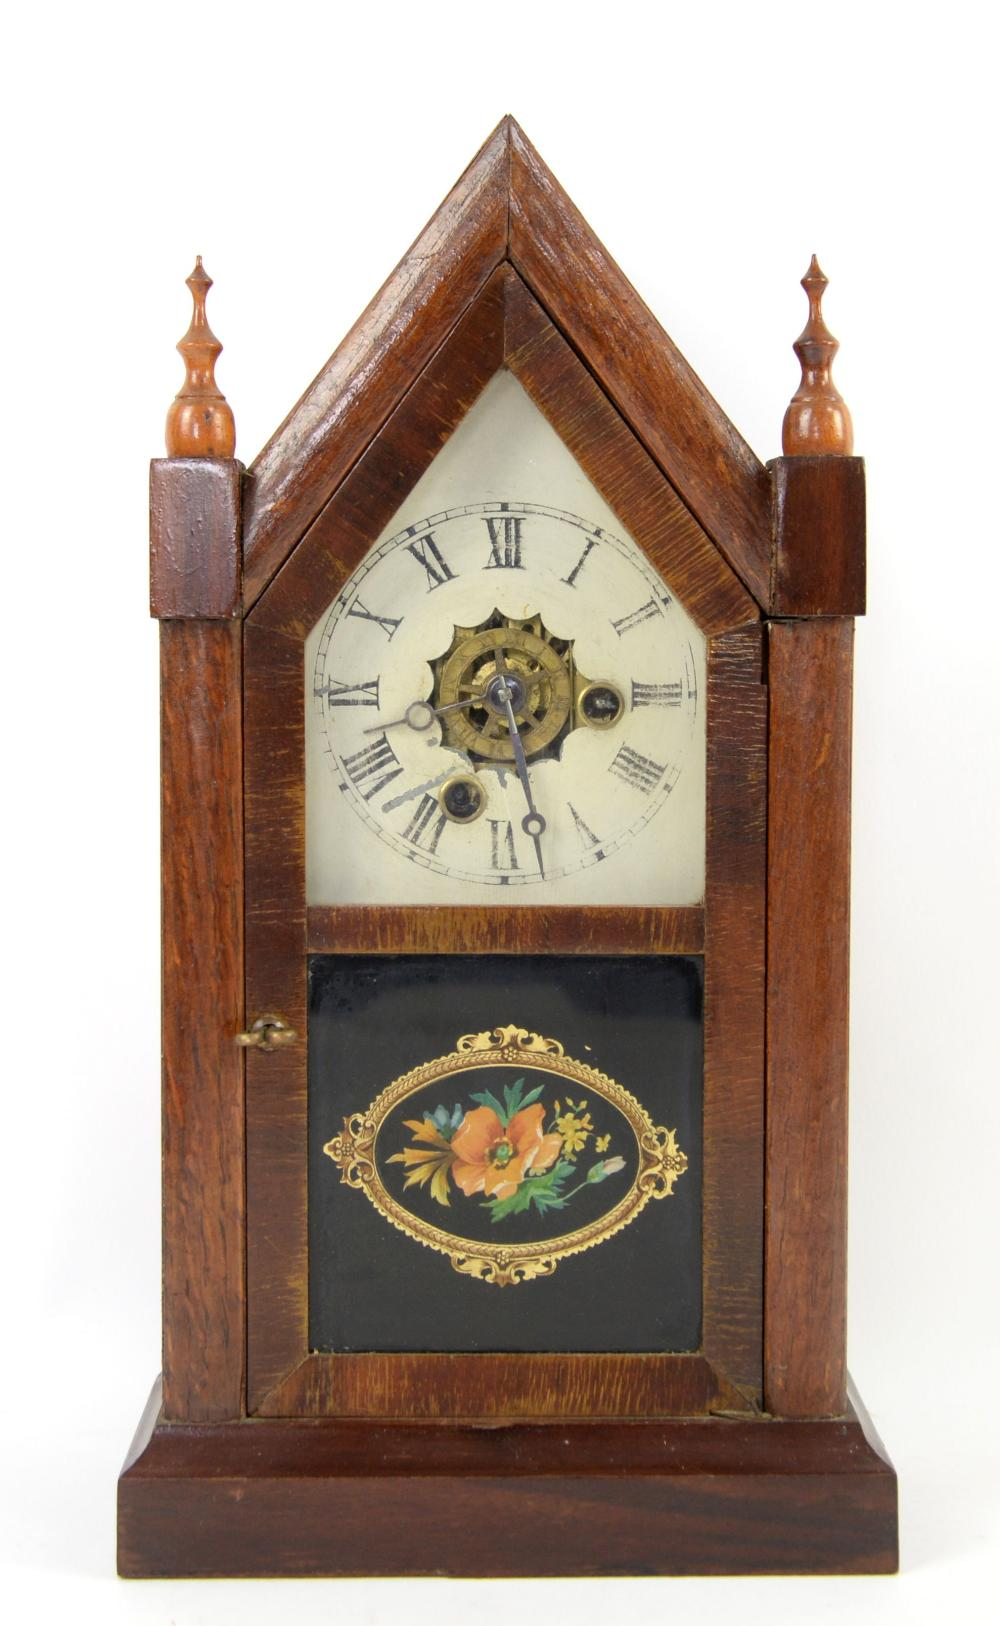 Mid 19th century American mantel clock with twin t